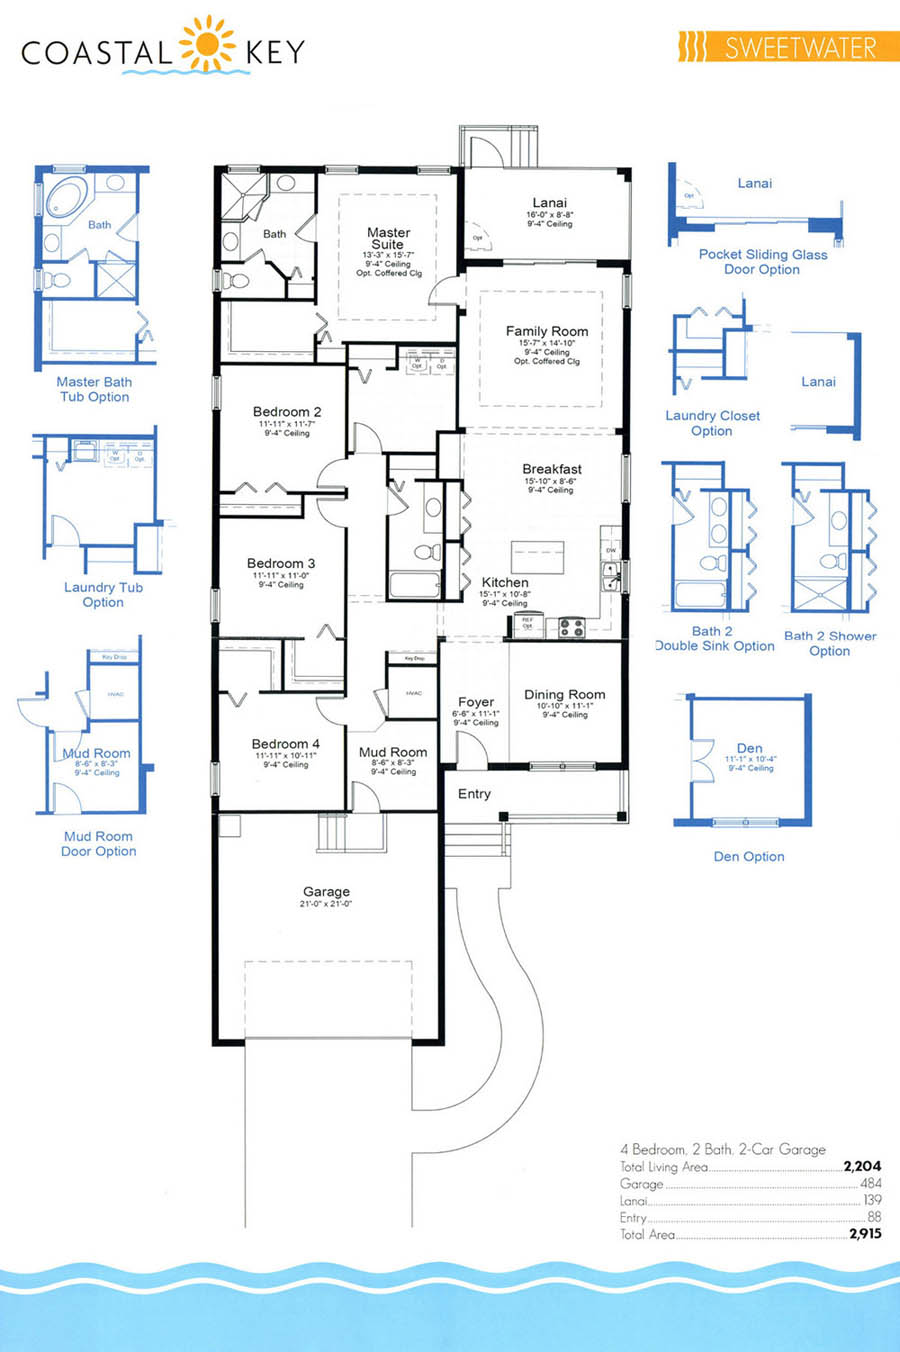 coastal key floor plans house plans coastal linwood custom homes